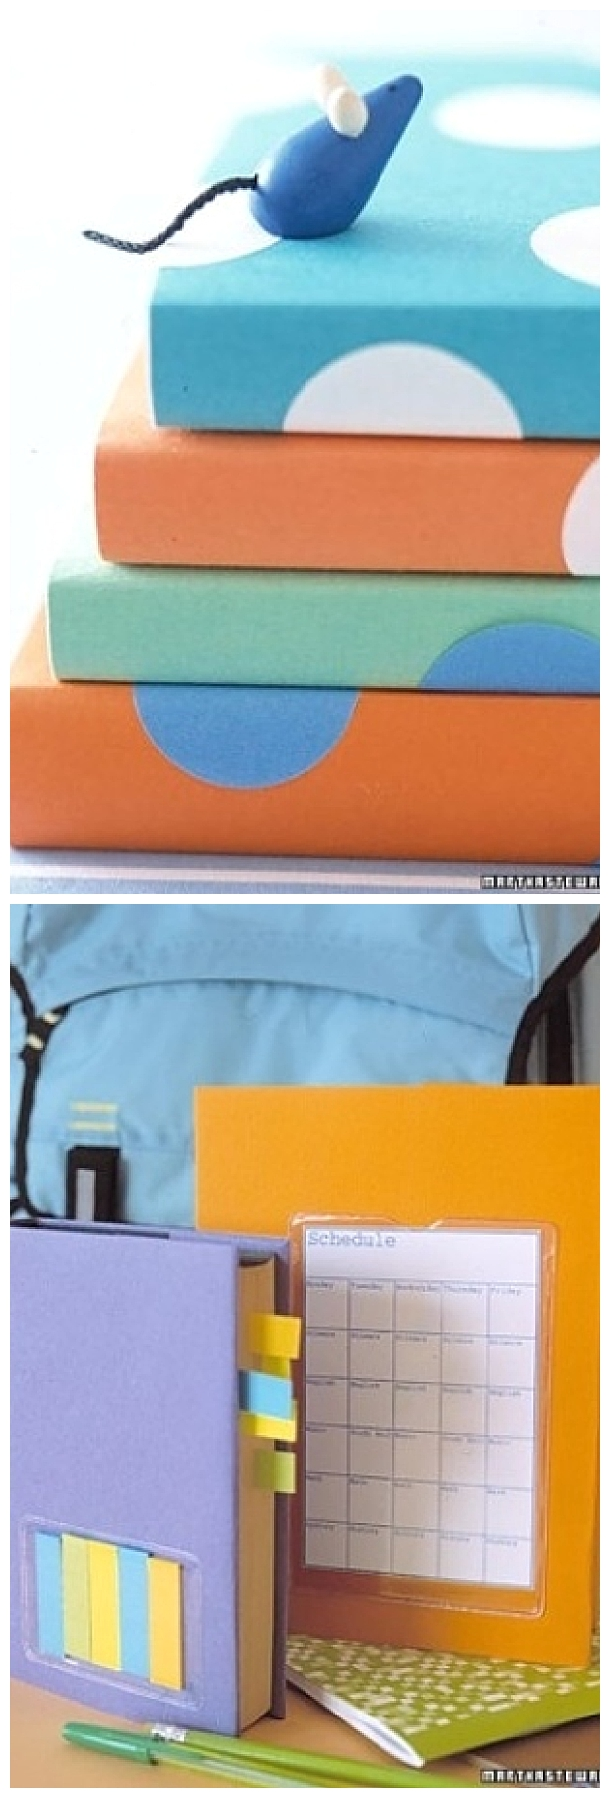 Diy Plastic Book Cover : The best back to school diy projects for teens and tweens